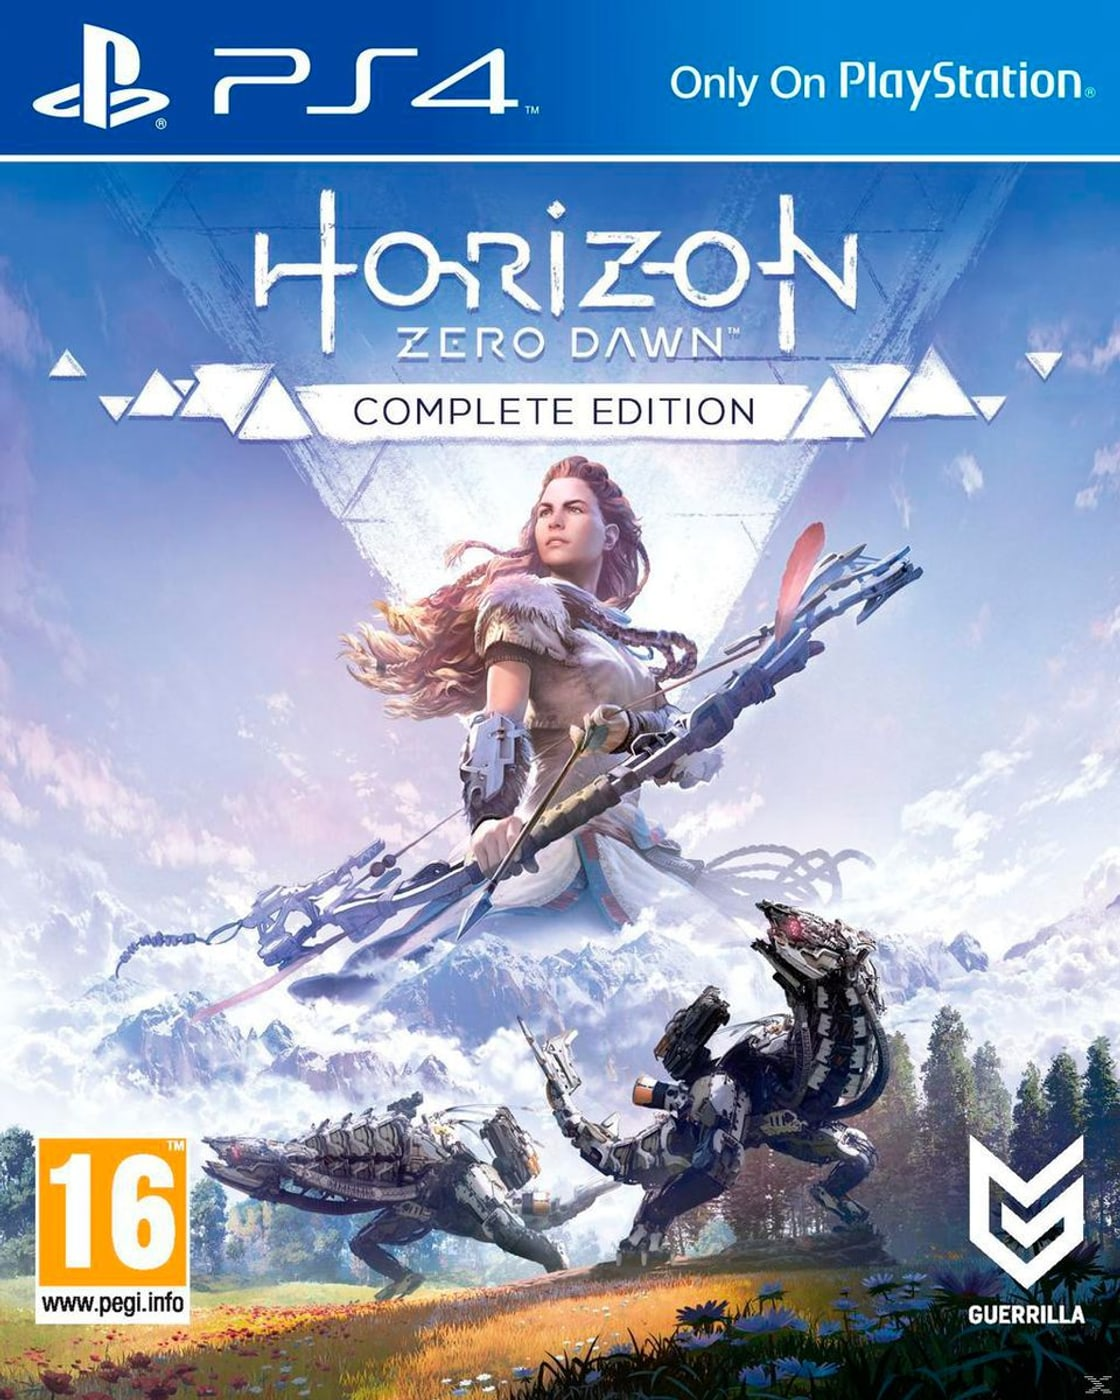 Horizon Zero Dawn Karte Ruinen.Ps4 Horizon Zero Dawn Complete Edition Box